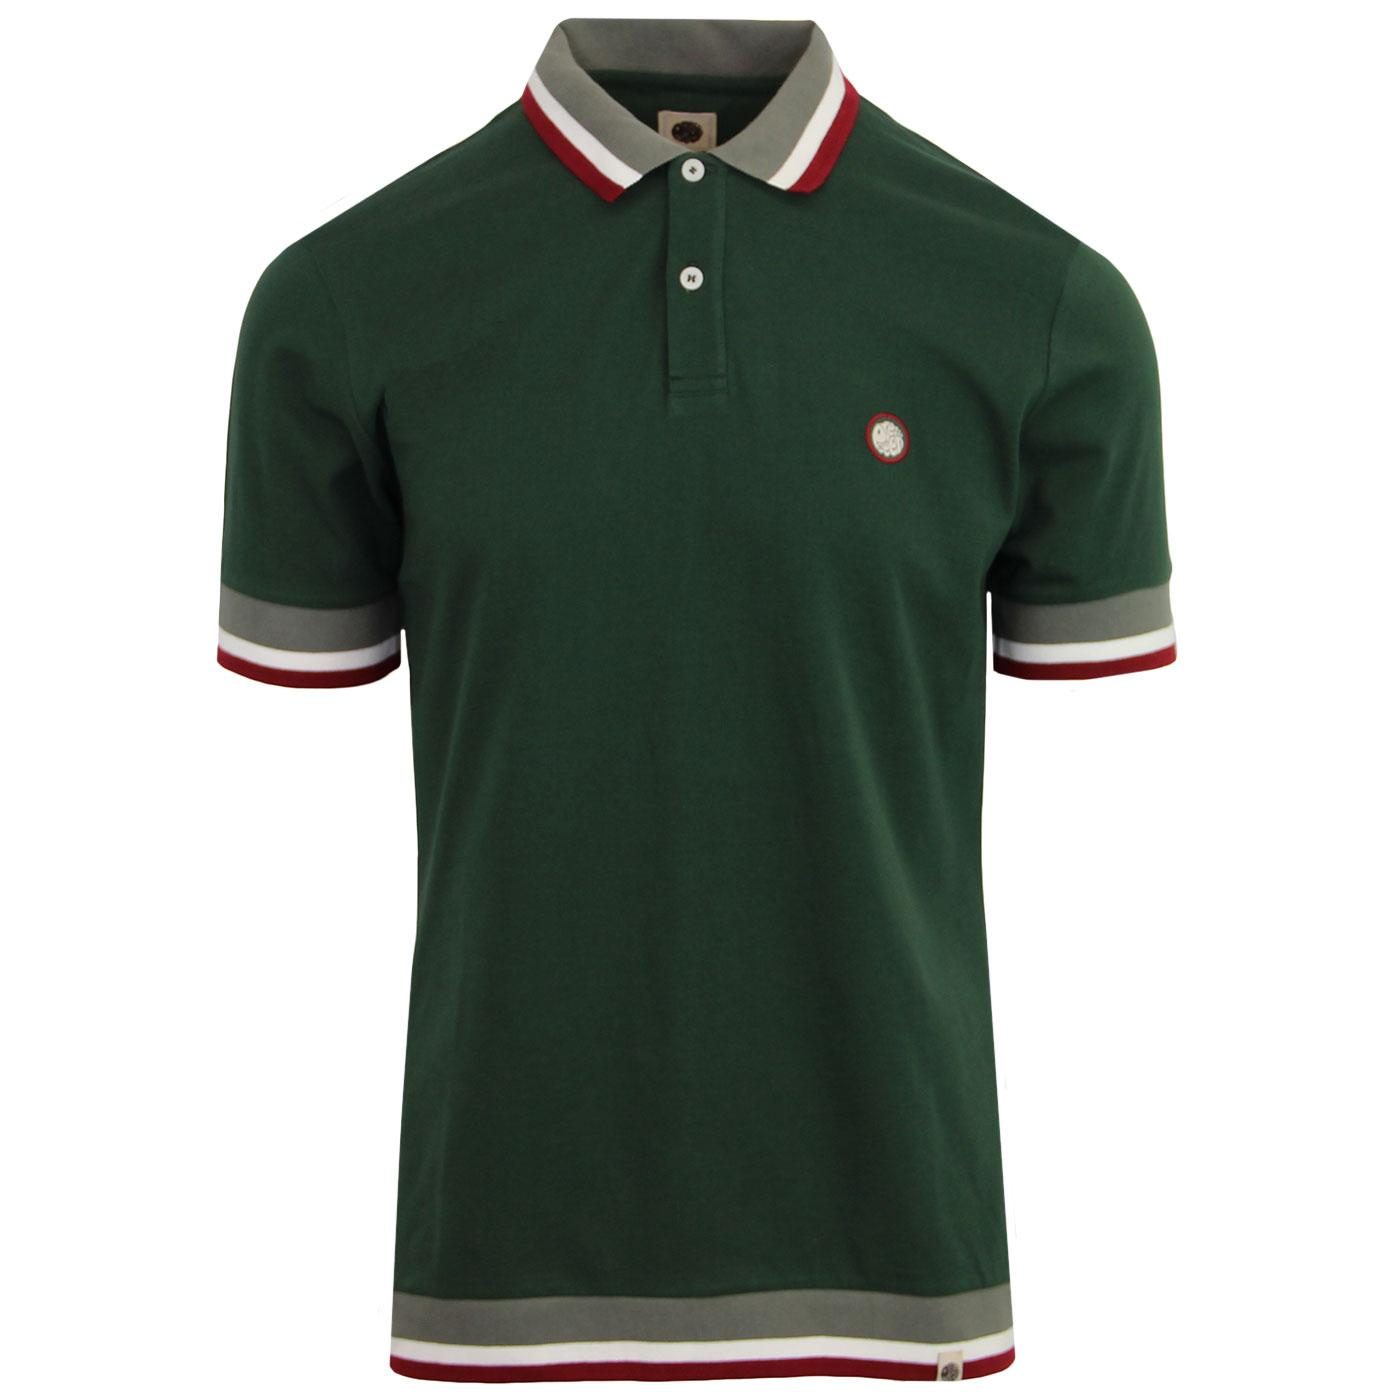 Fairbrook PRETTY GREEN  Mod Autostripe Trim Polo G